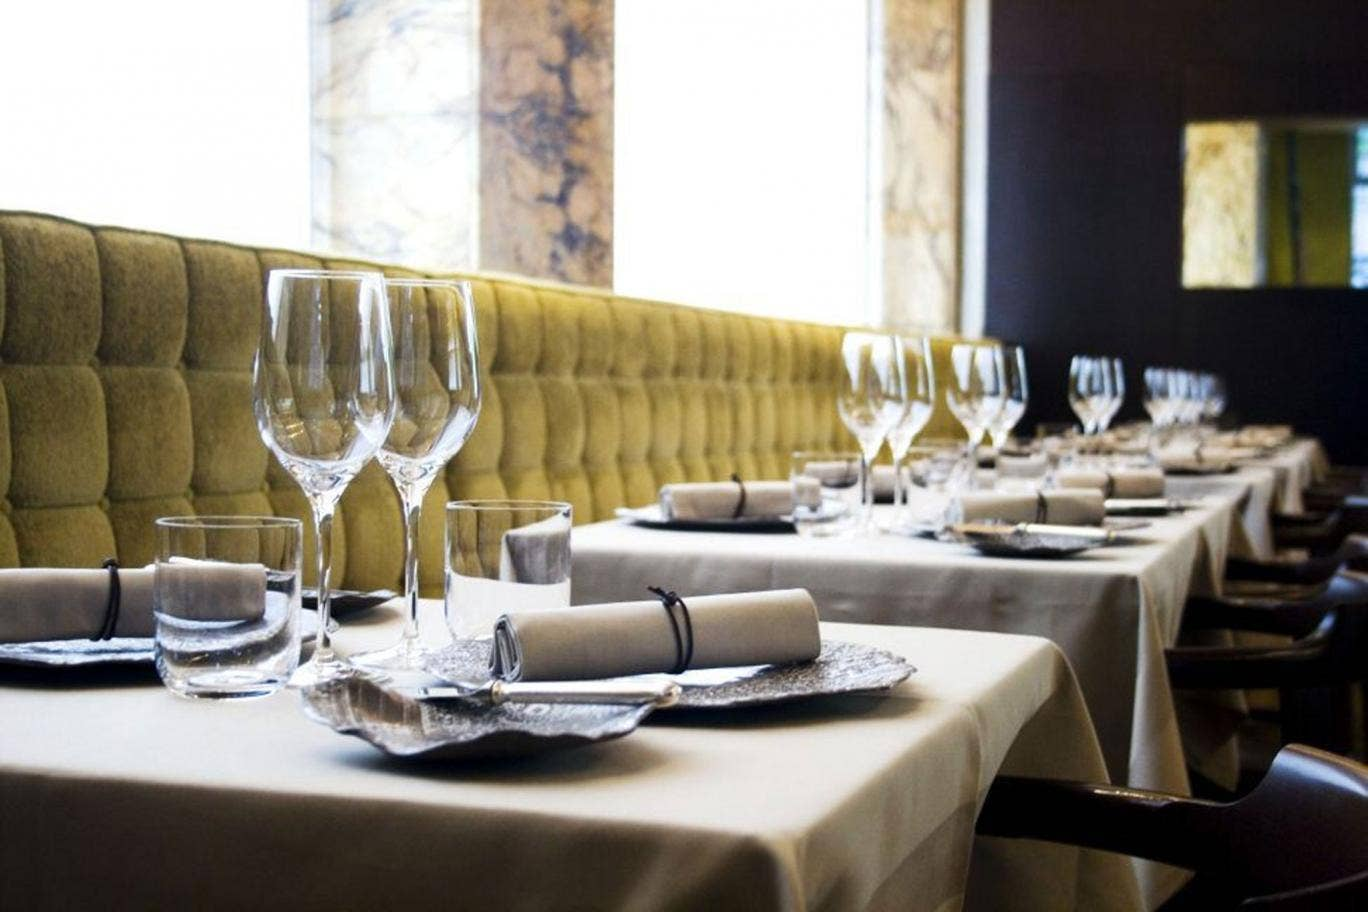 London's Club Gascon is offering four courses for £32.50 per person